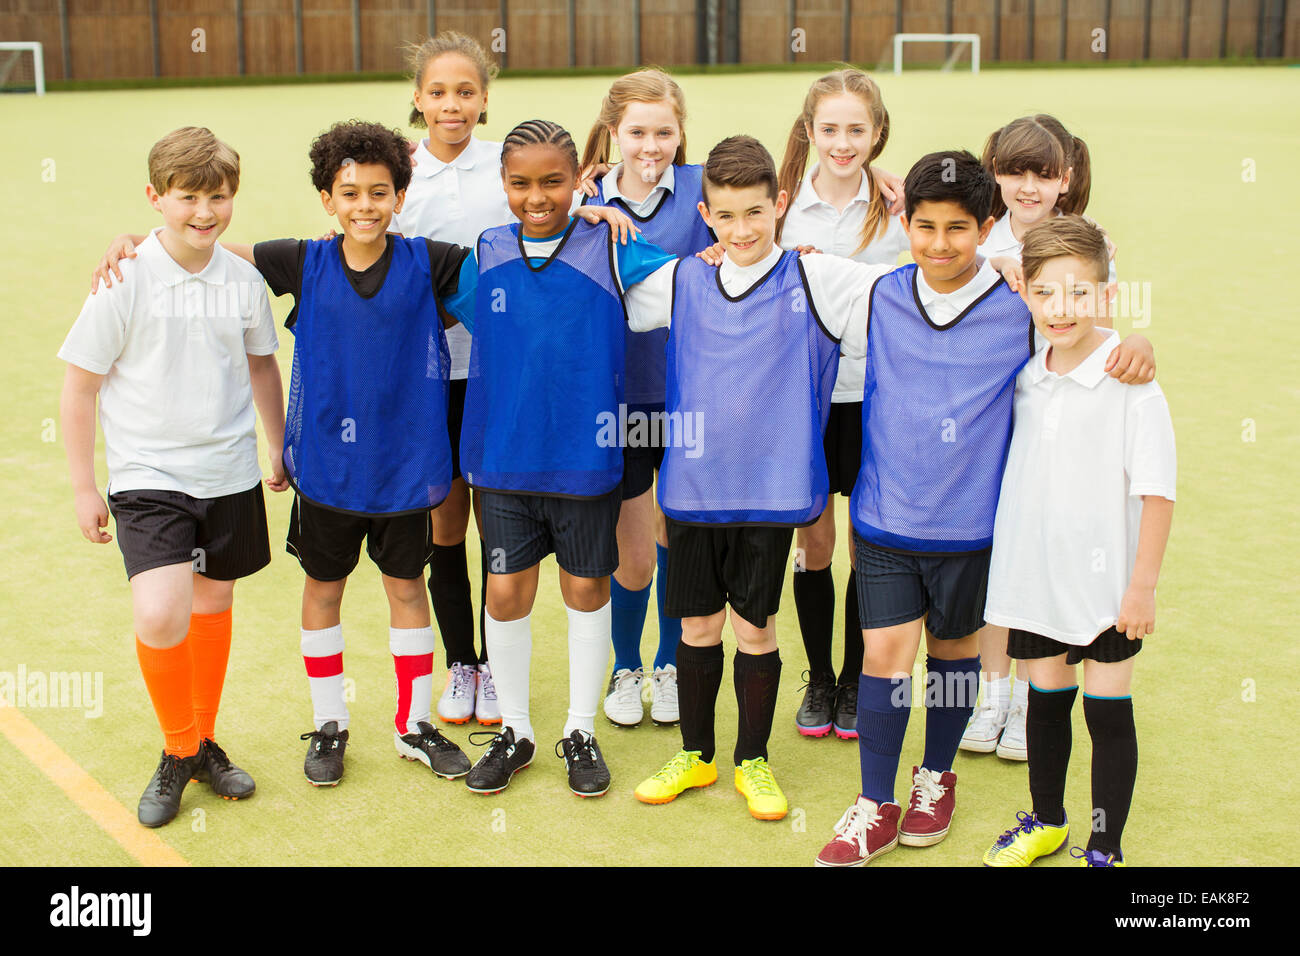 Group portrait of children wearing sport uniforms standing in school gym Stock Photo